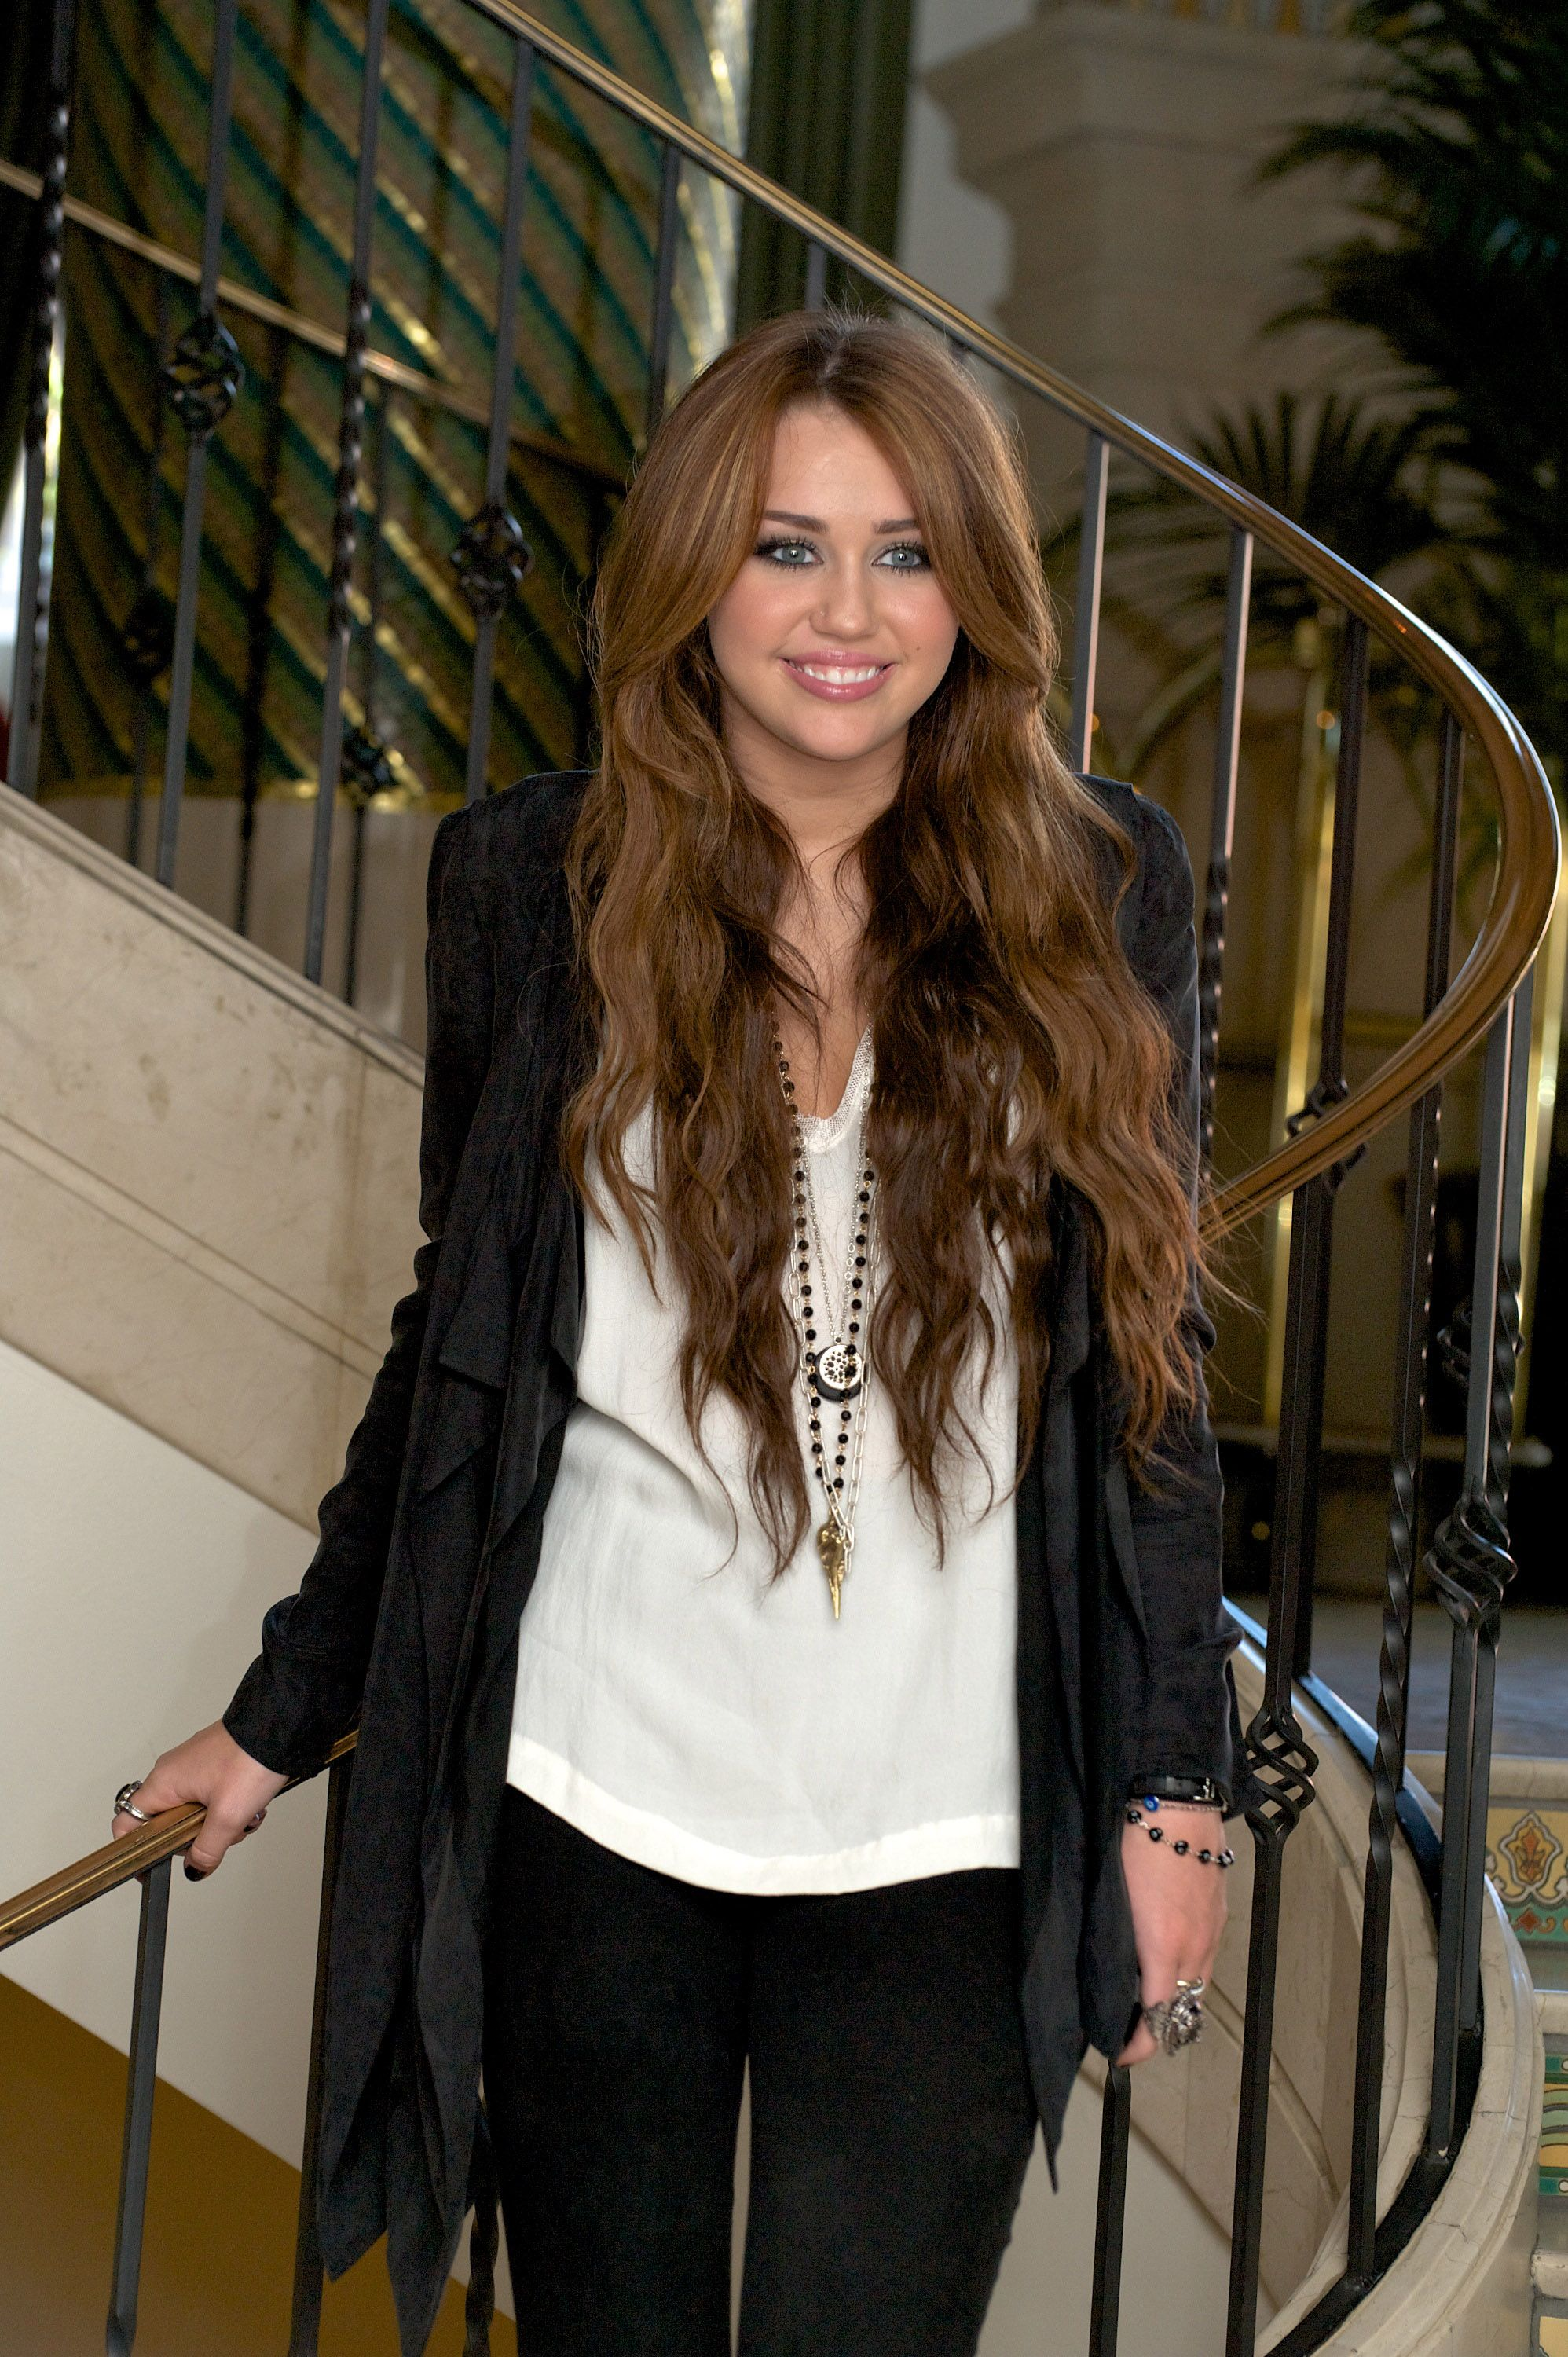 Miley Cyrus Photo 244262 Theplace2 Ru Miley Cyrus Long Hair Miley Cyrus Hair Miley Cyrus Brown Hair